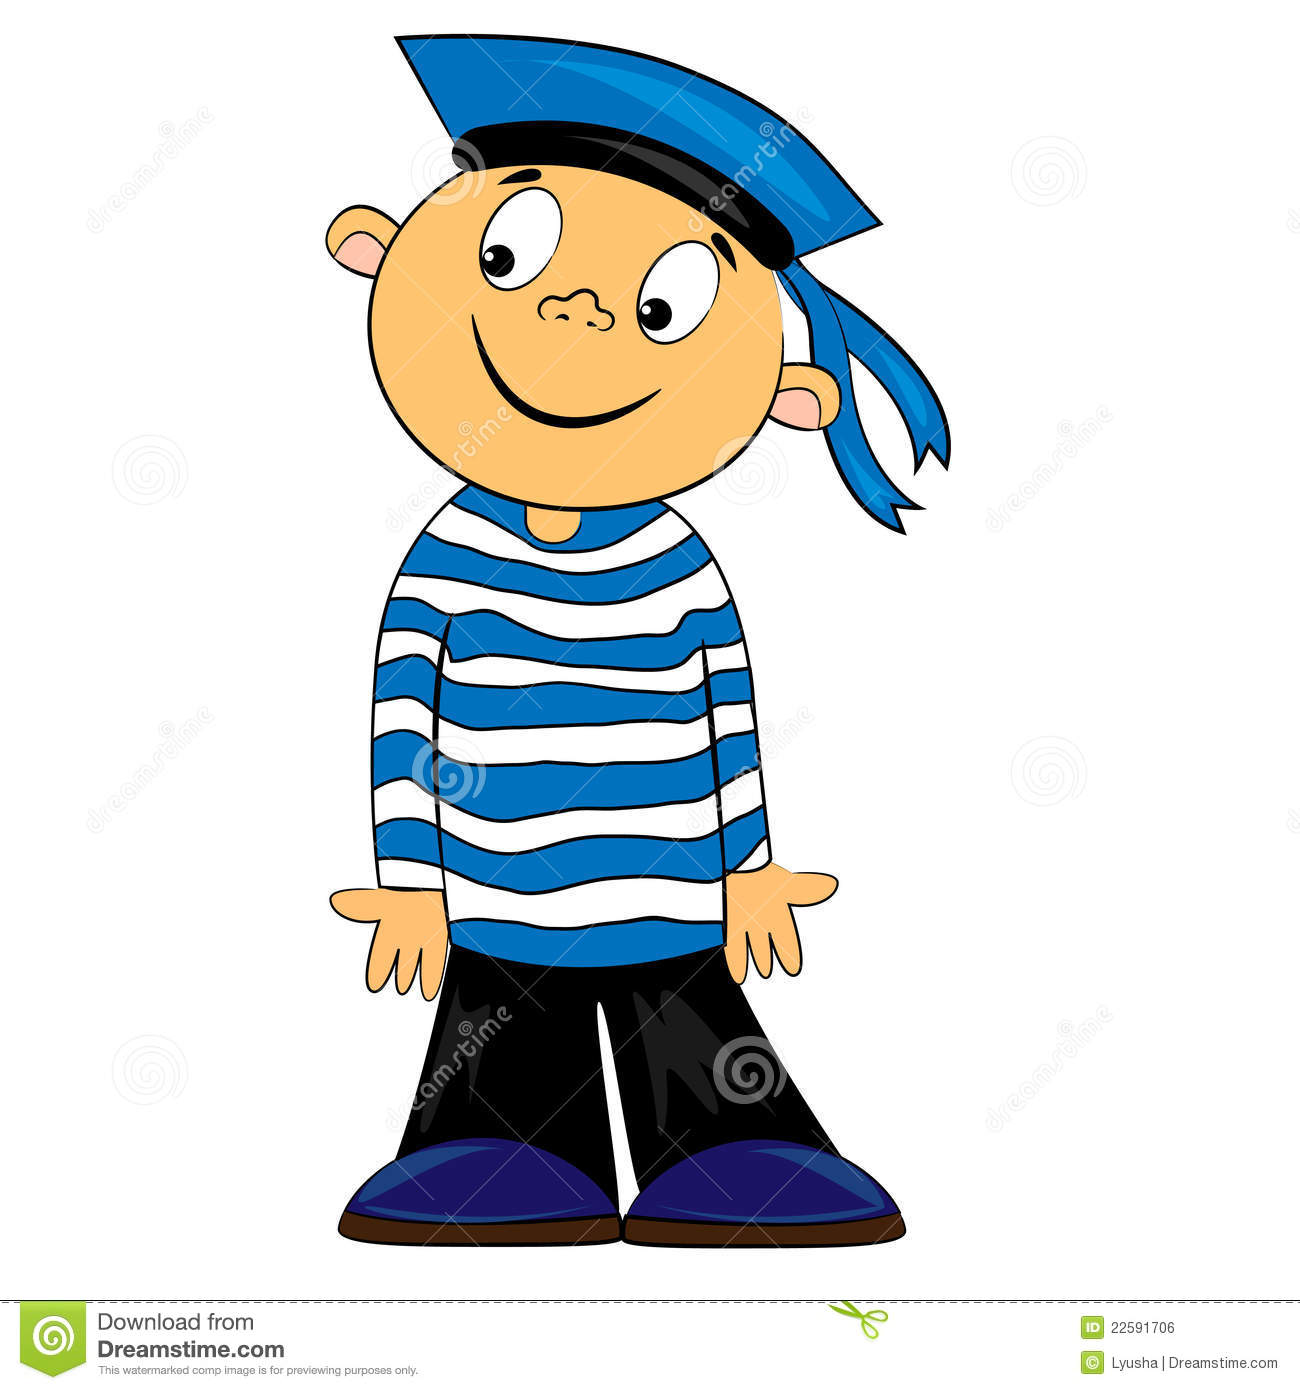 Cartoon Characters Yellow And Black Striped Shirts : Sailor cartoon clipart suggest